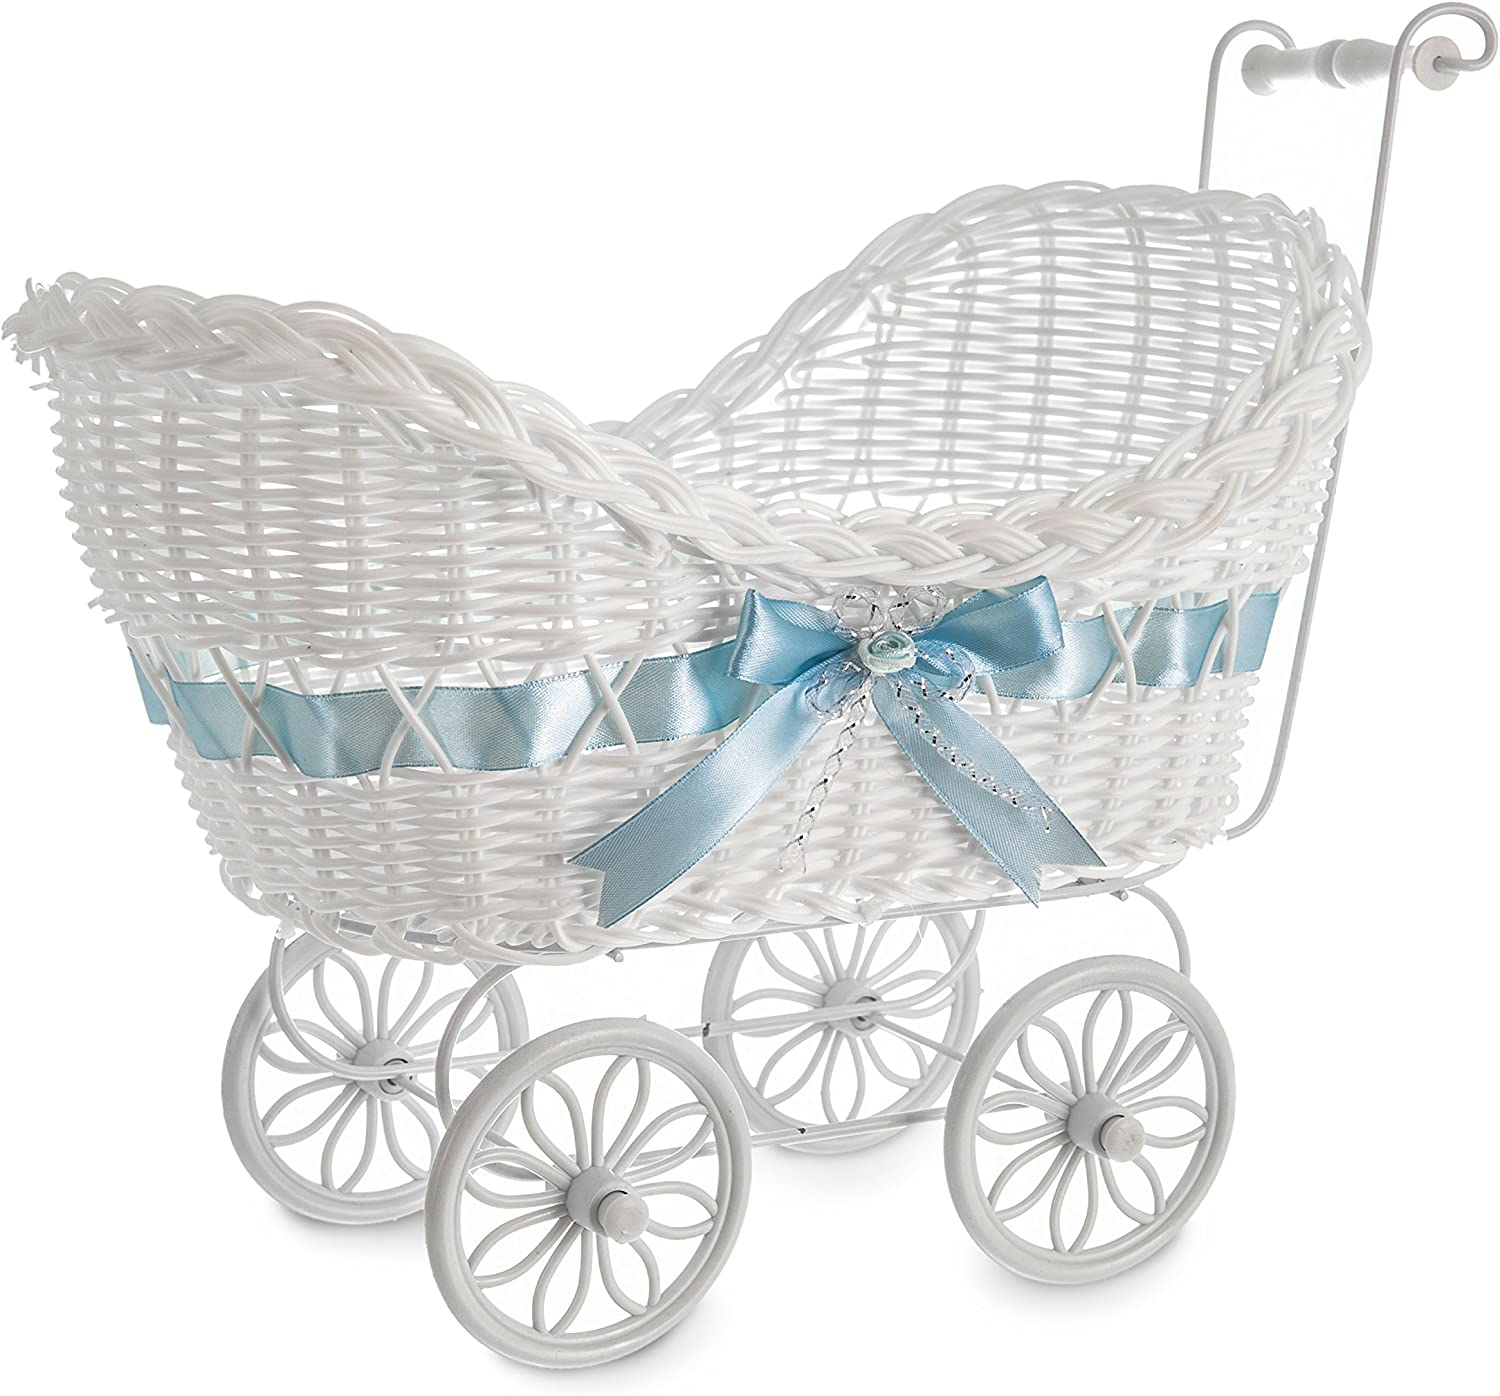 Blue LIVIVO White Baby Pram Wicker Hamper Basket with Handles Wheels and Colourful Satin Ribbon Bow Perfect for Baby Showers or Newborn Baby Gifts